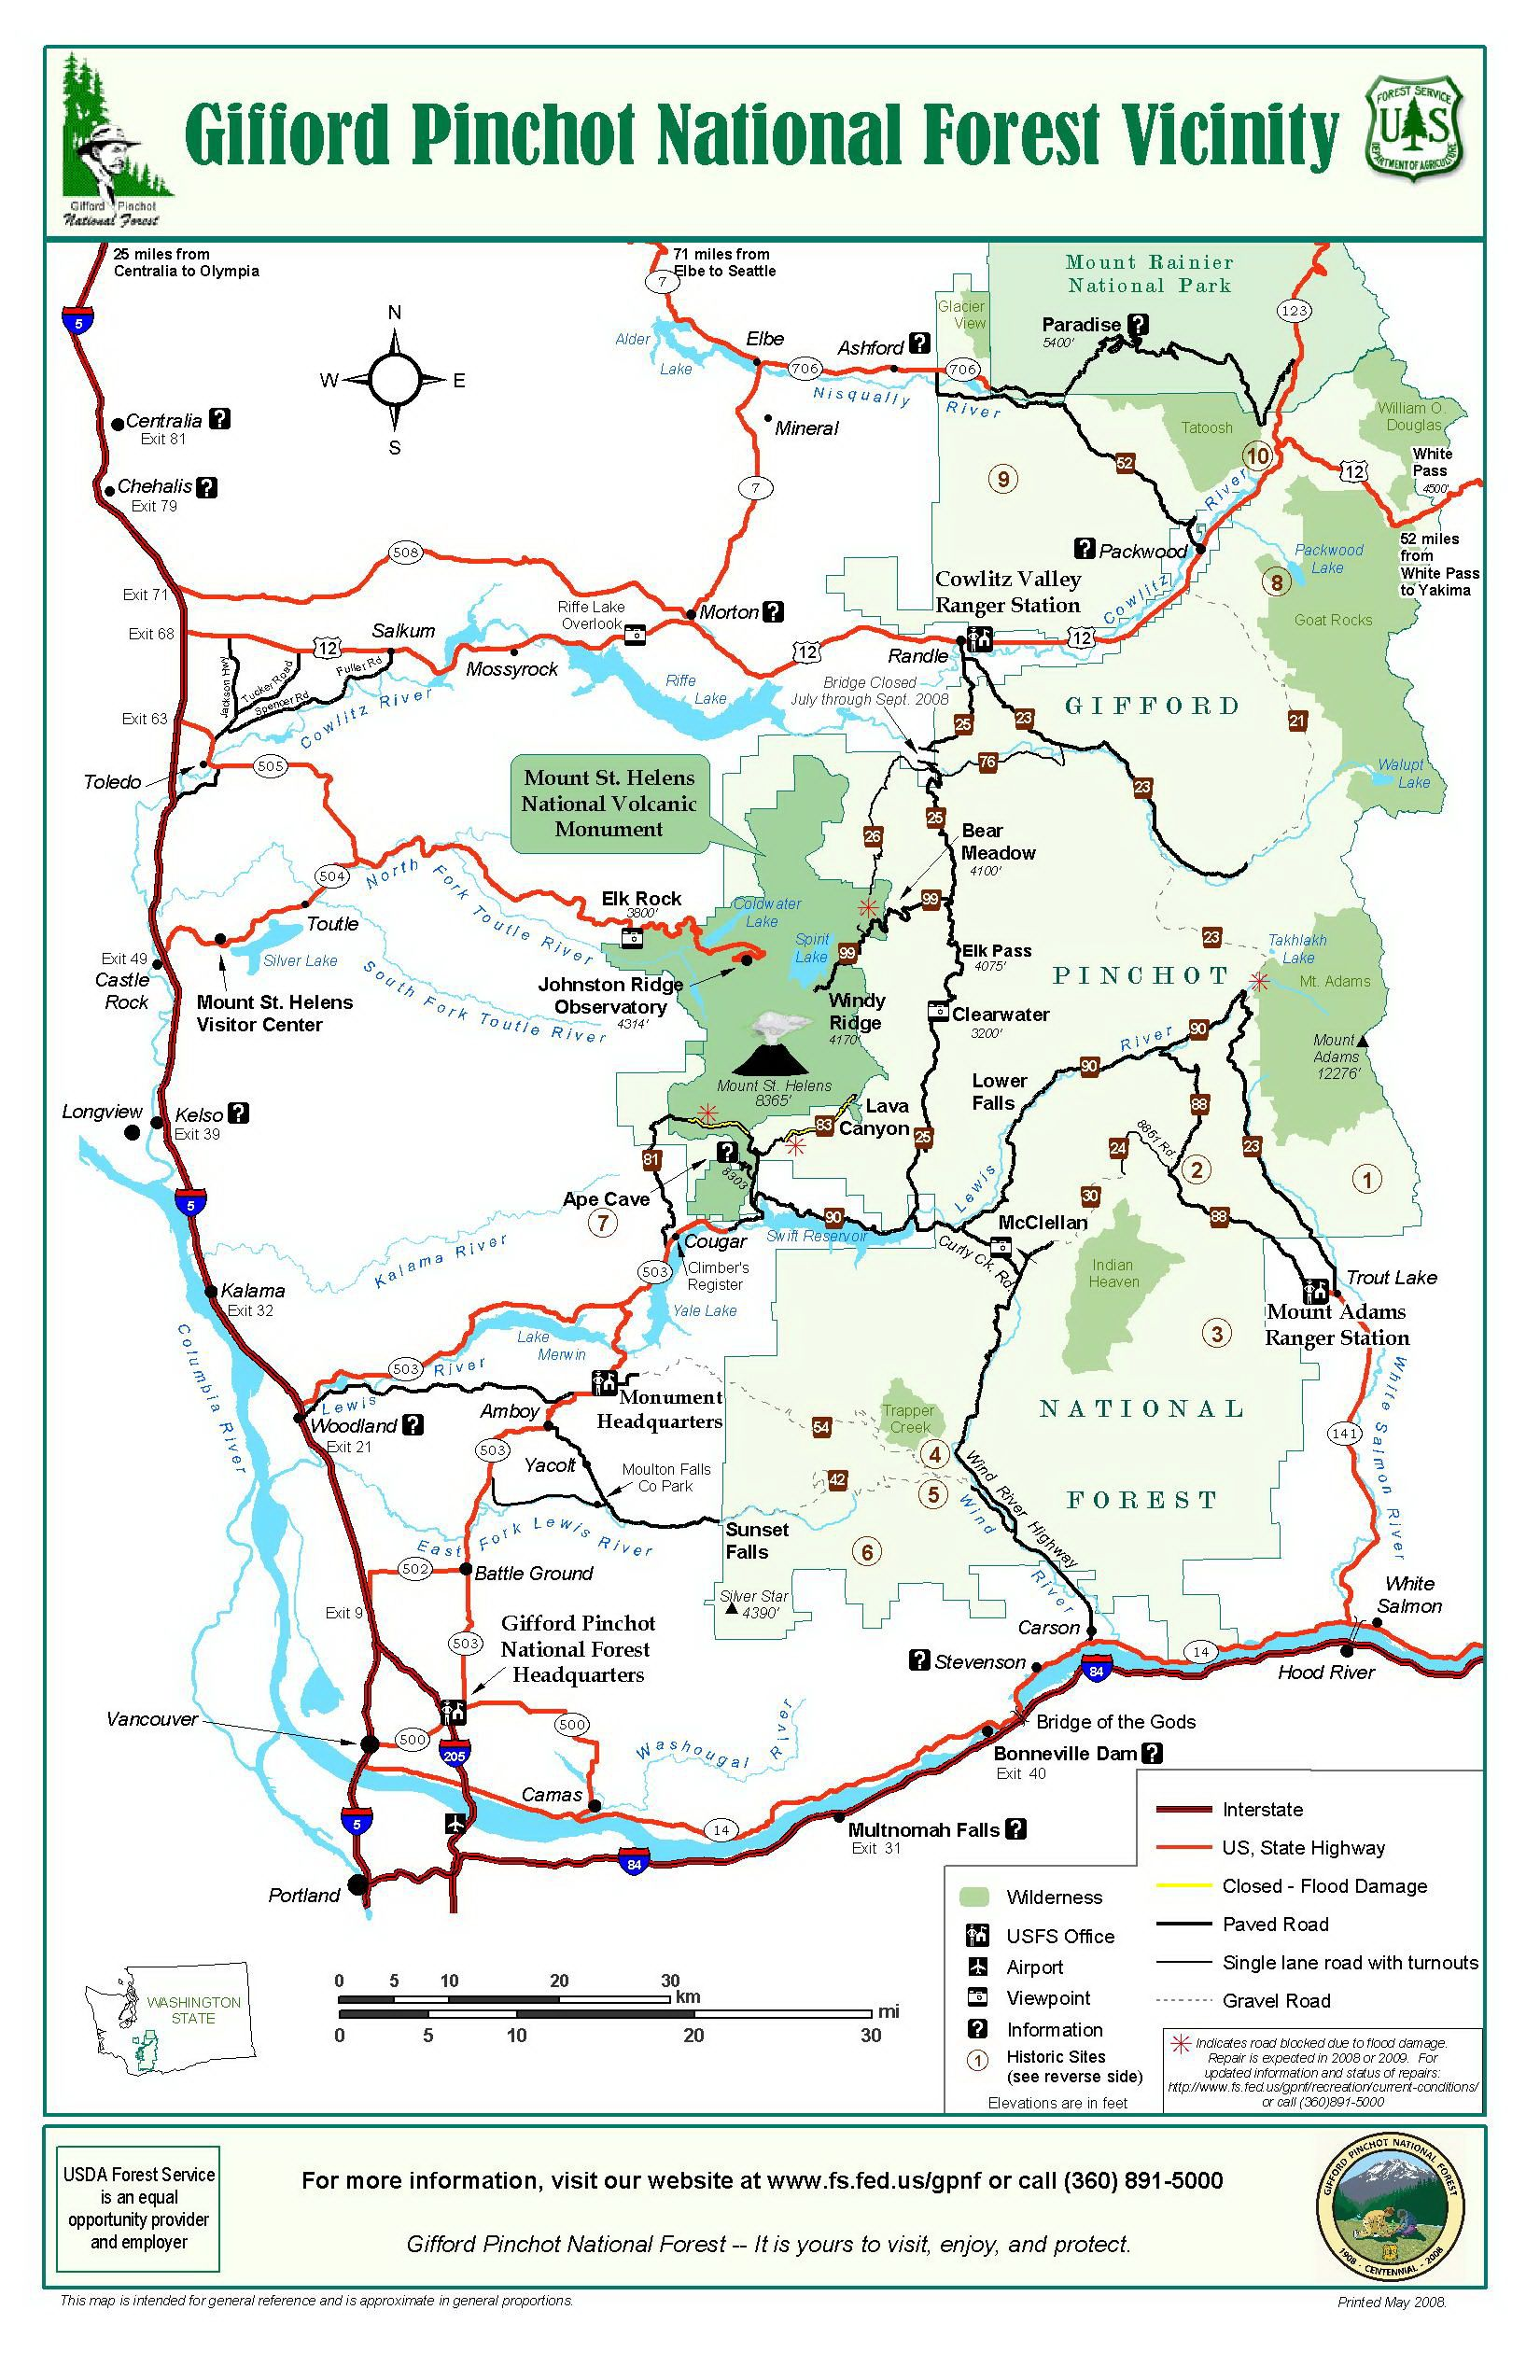 Gifford Pinchot National Forest General Map Vacation Ideas